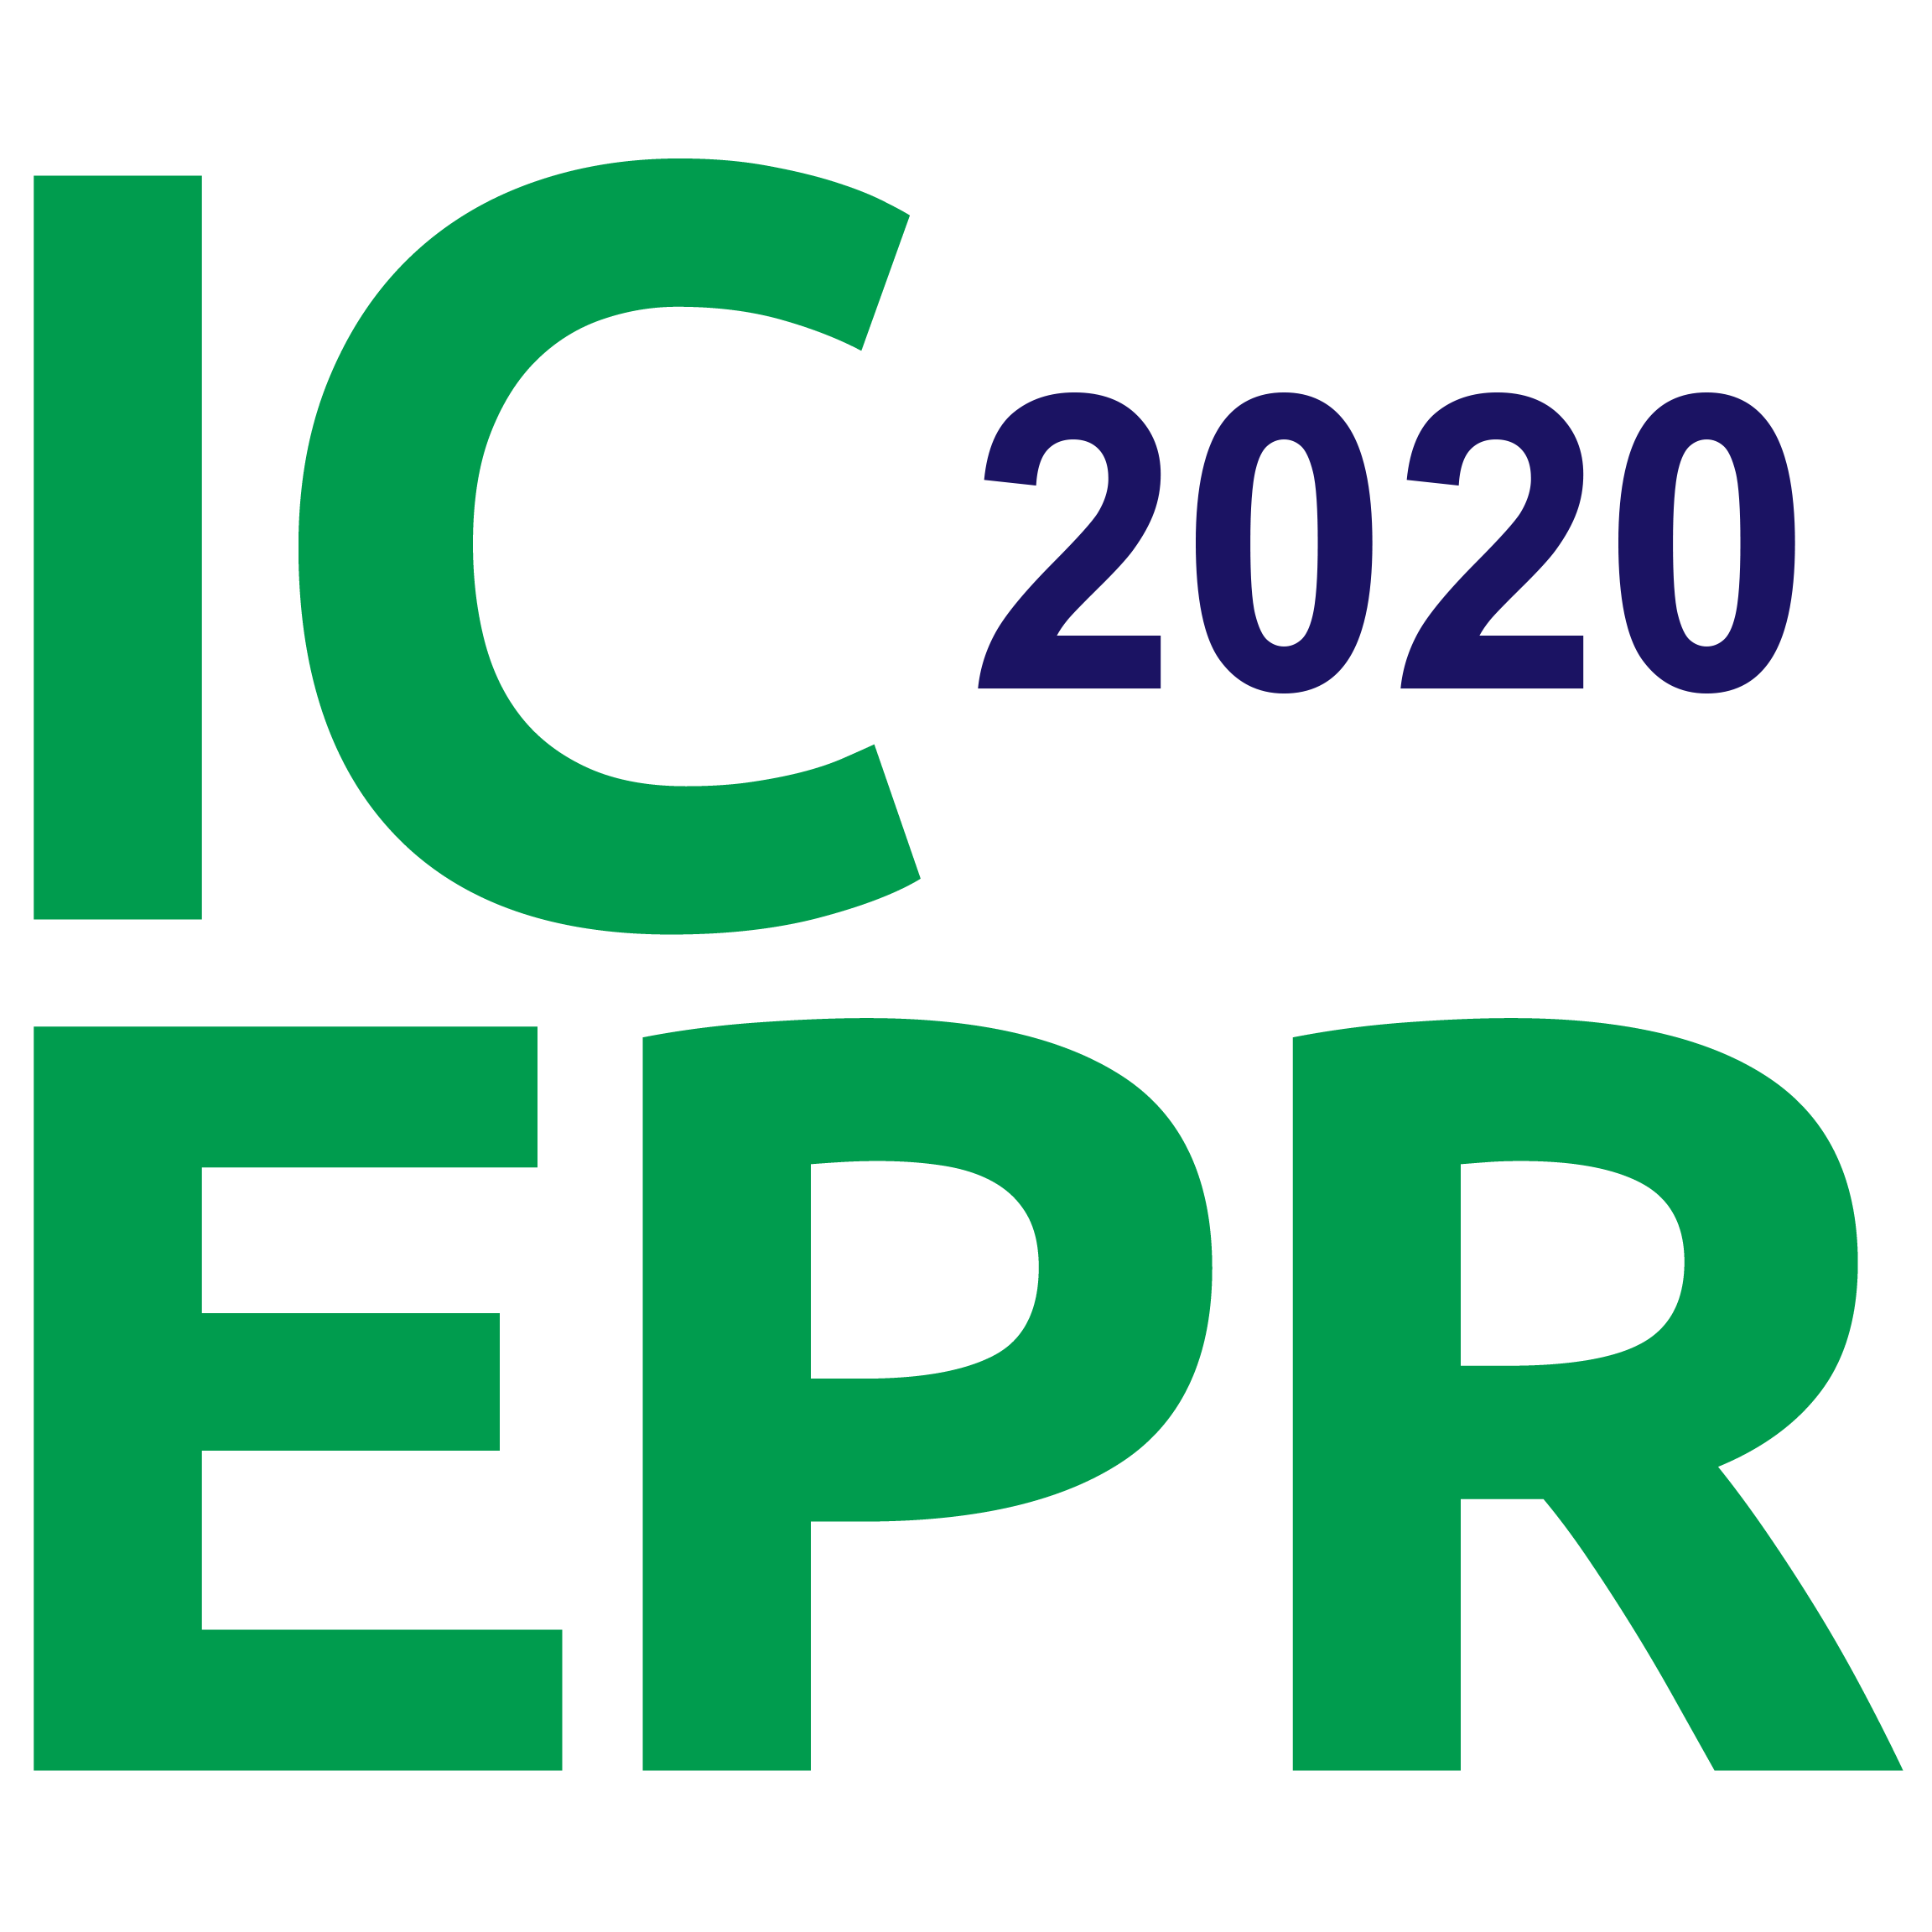 10th International Conference on Environmental Pollution and Remediation (ICEPR'20)